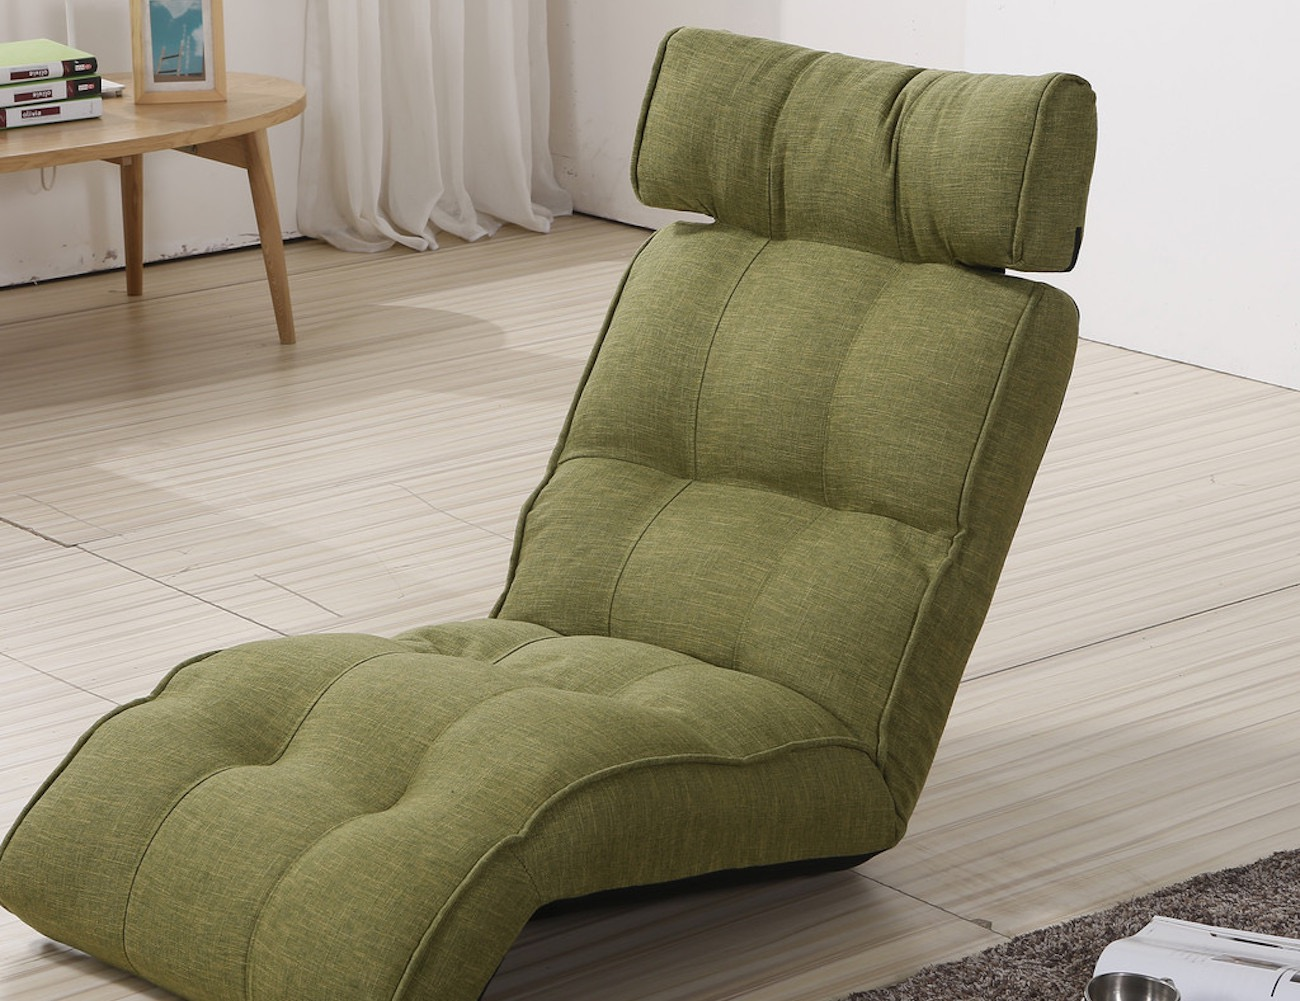 deluxe-sofa-chair-by-cozy-kino-03